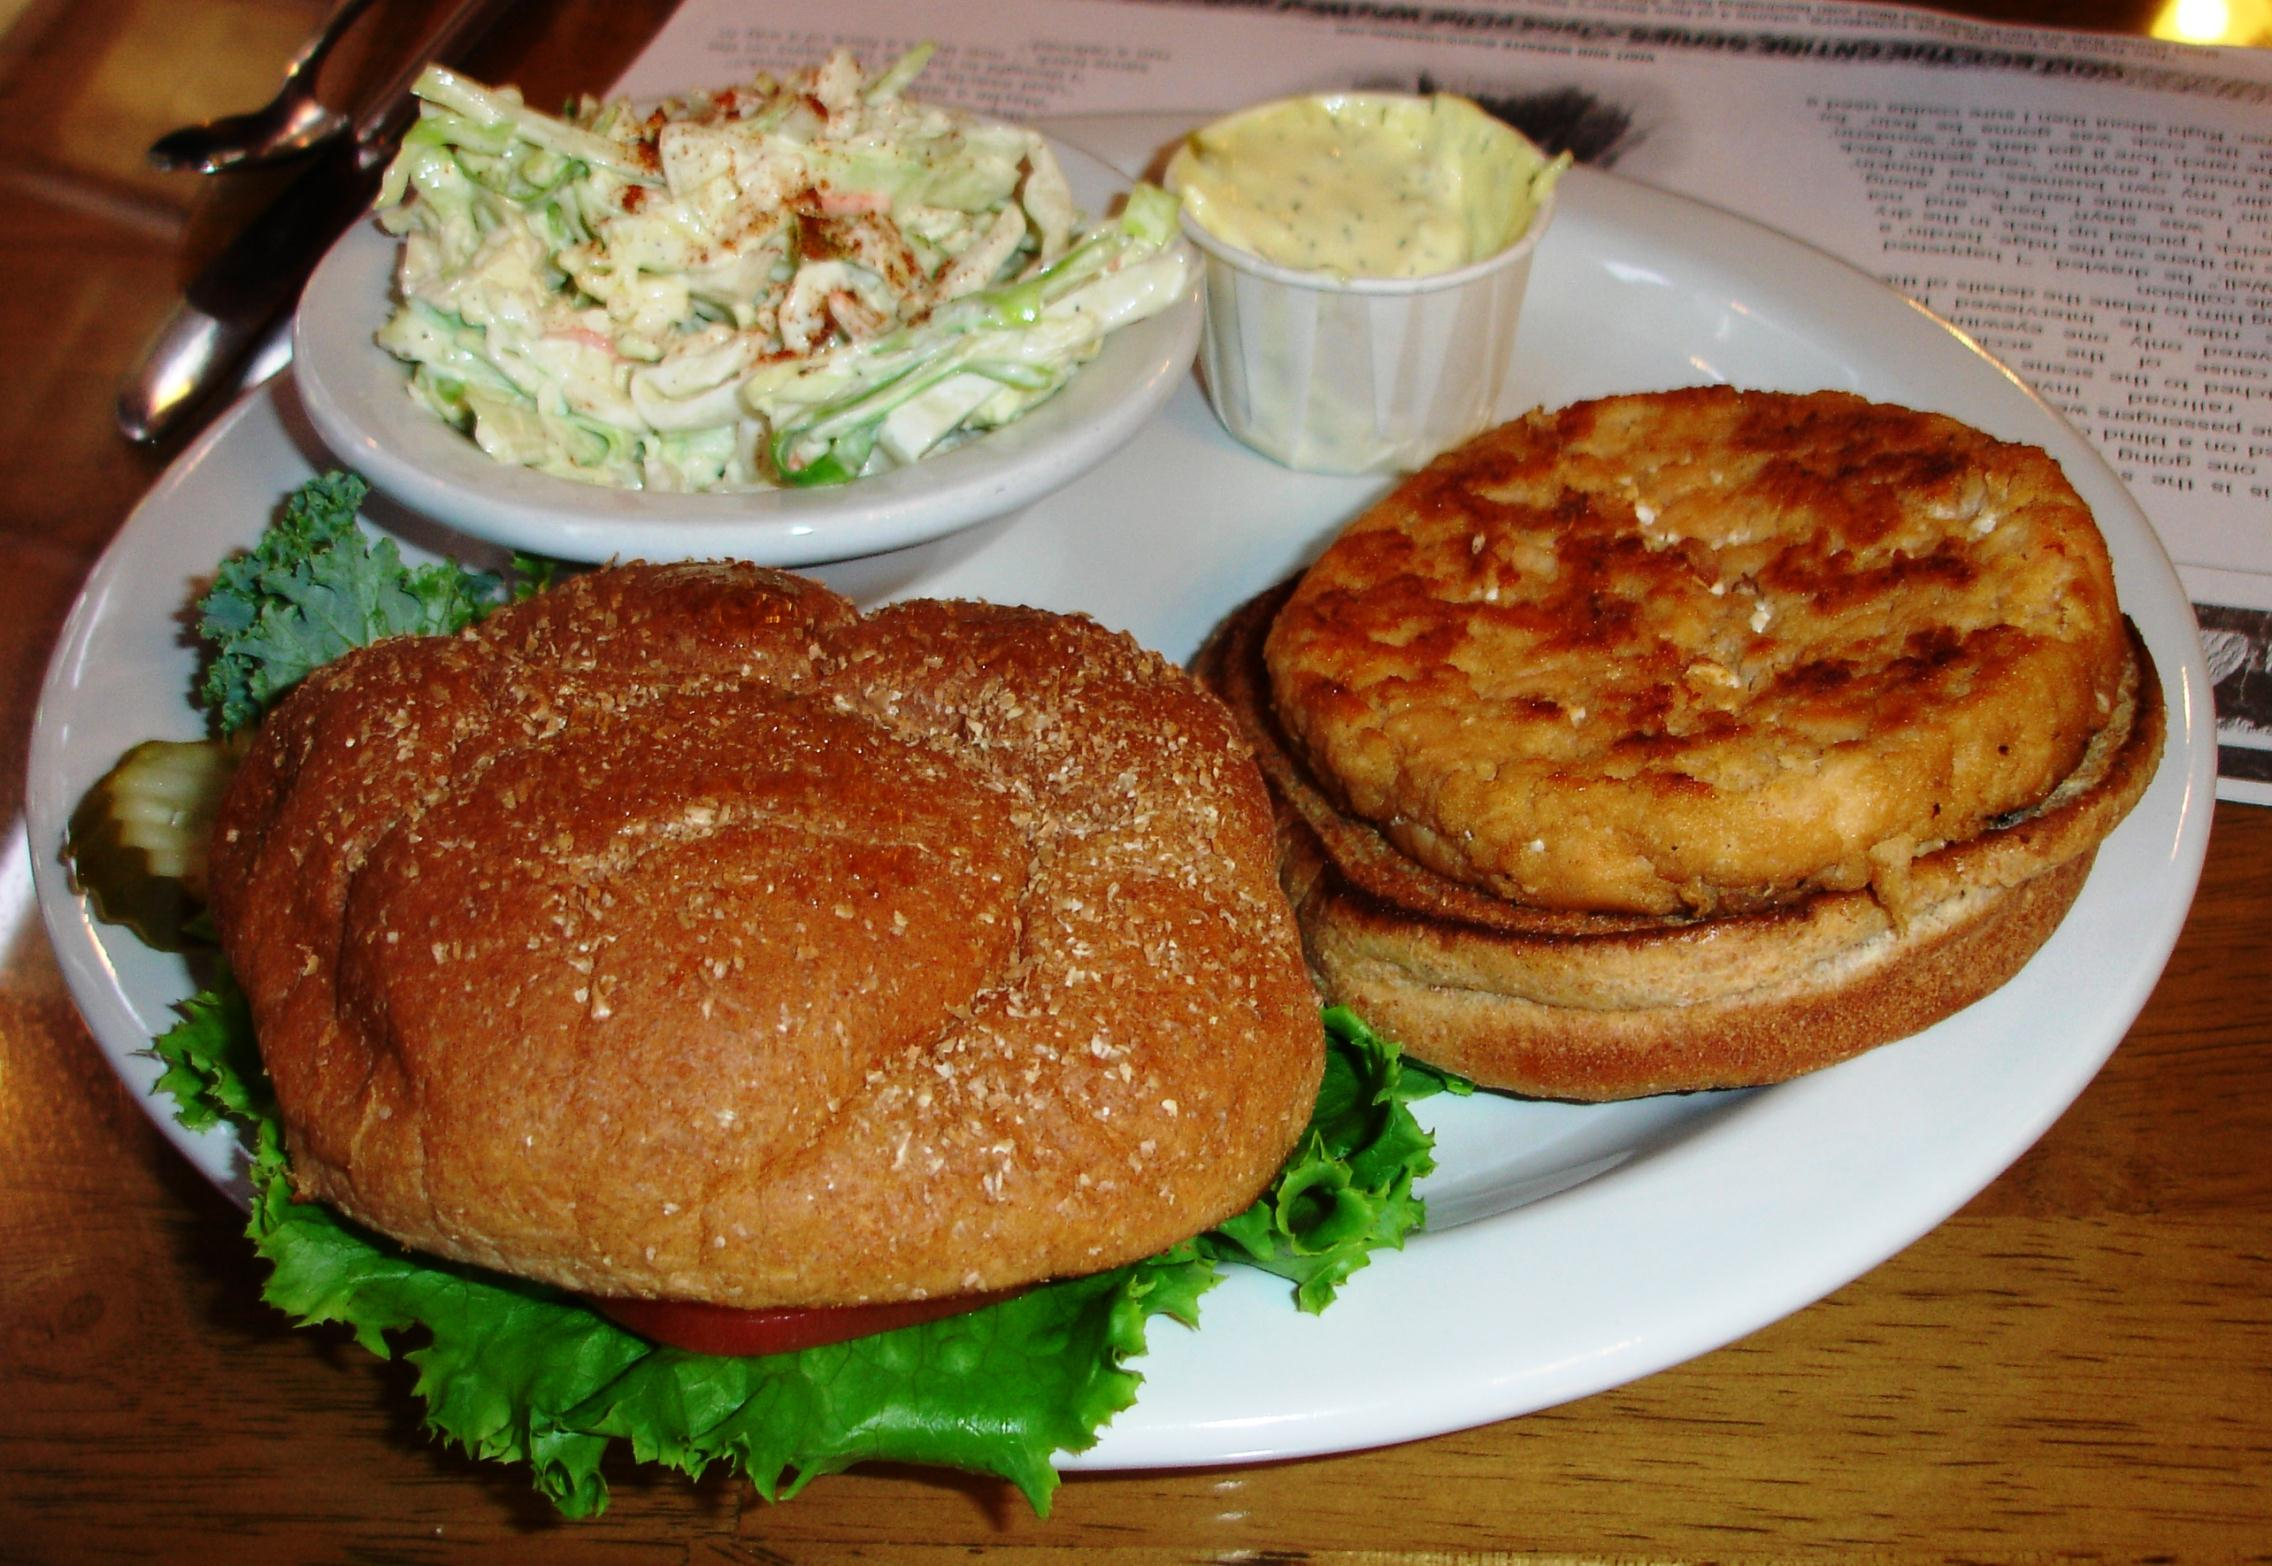 A grilled salmon burger arrives on a multi-grain bun with tartar sauce and, in this instance, coleslaw.